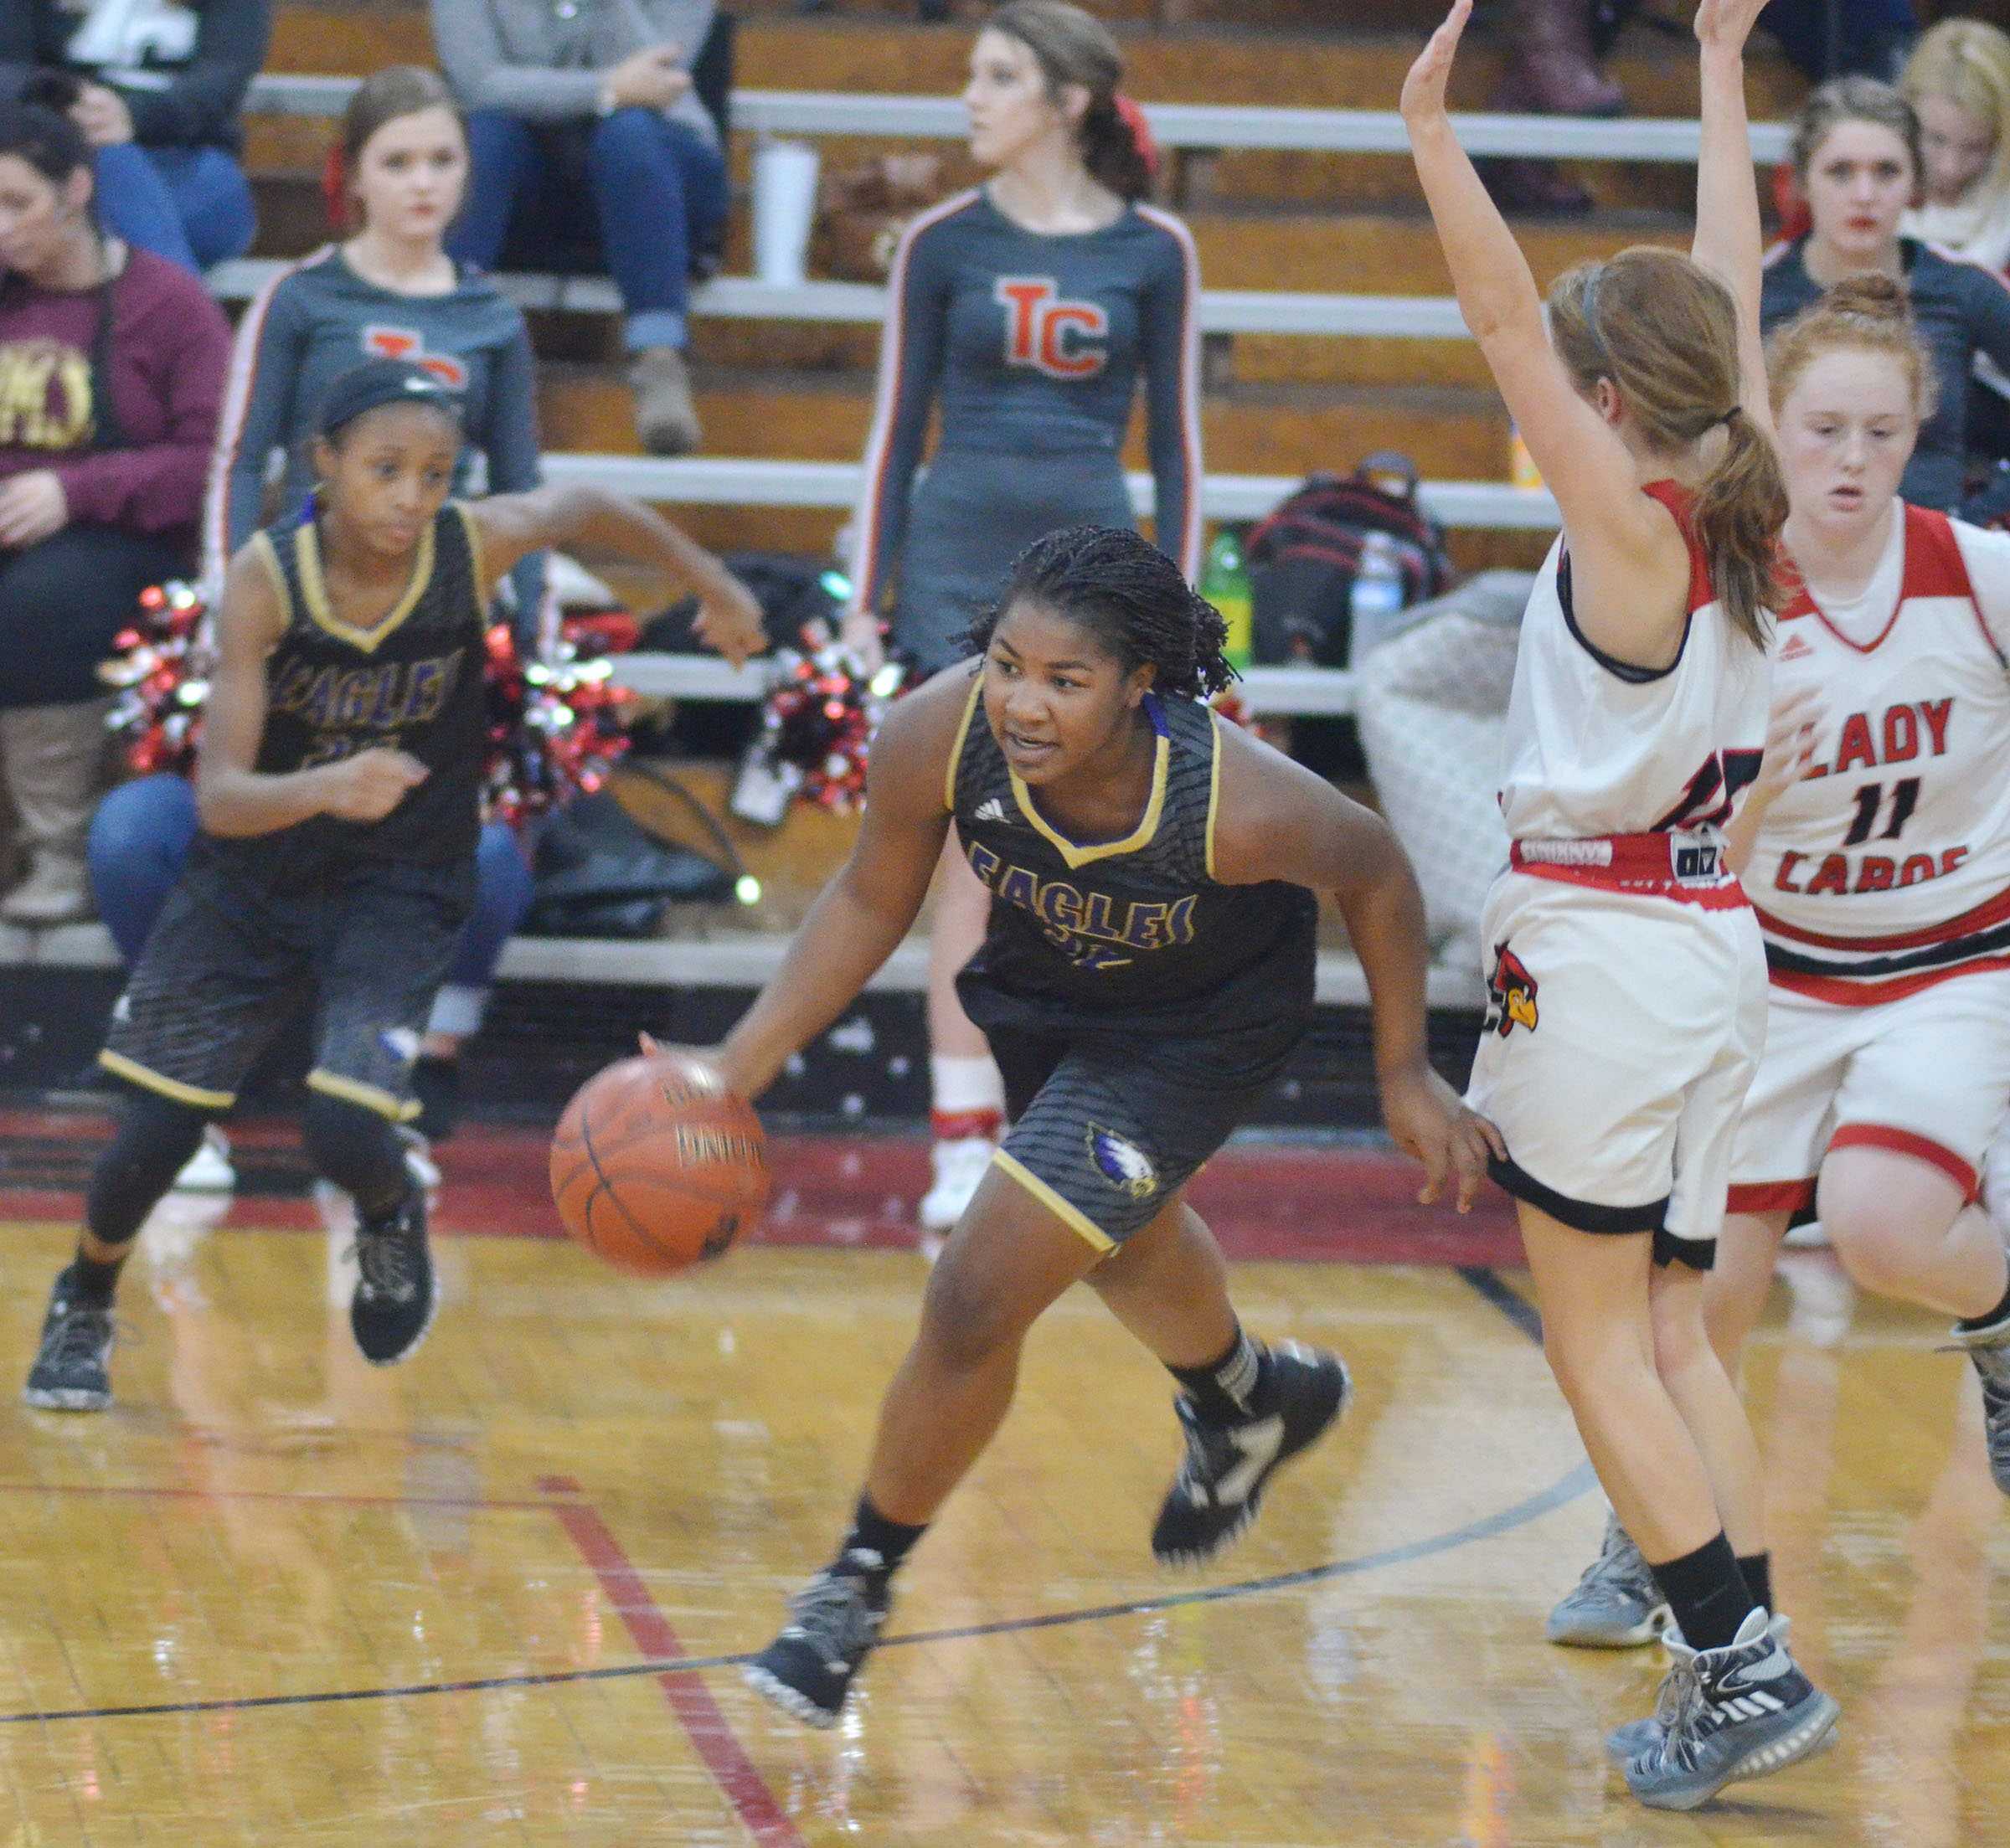 CHS junior Nena Barnett steals the ball.